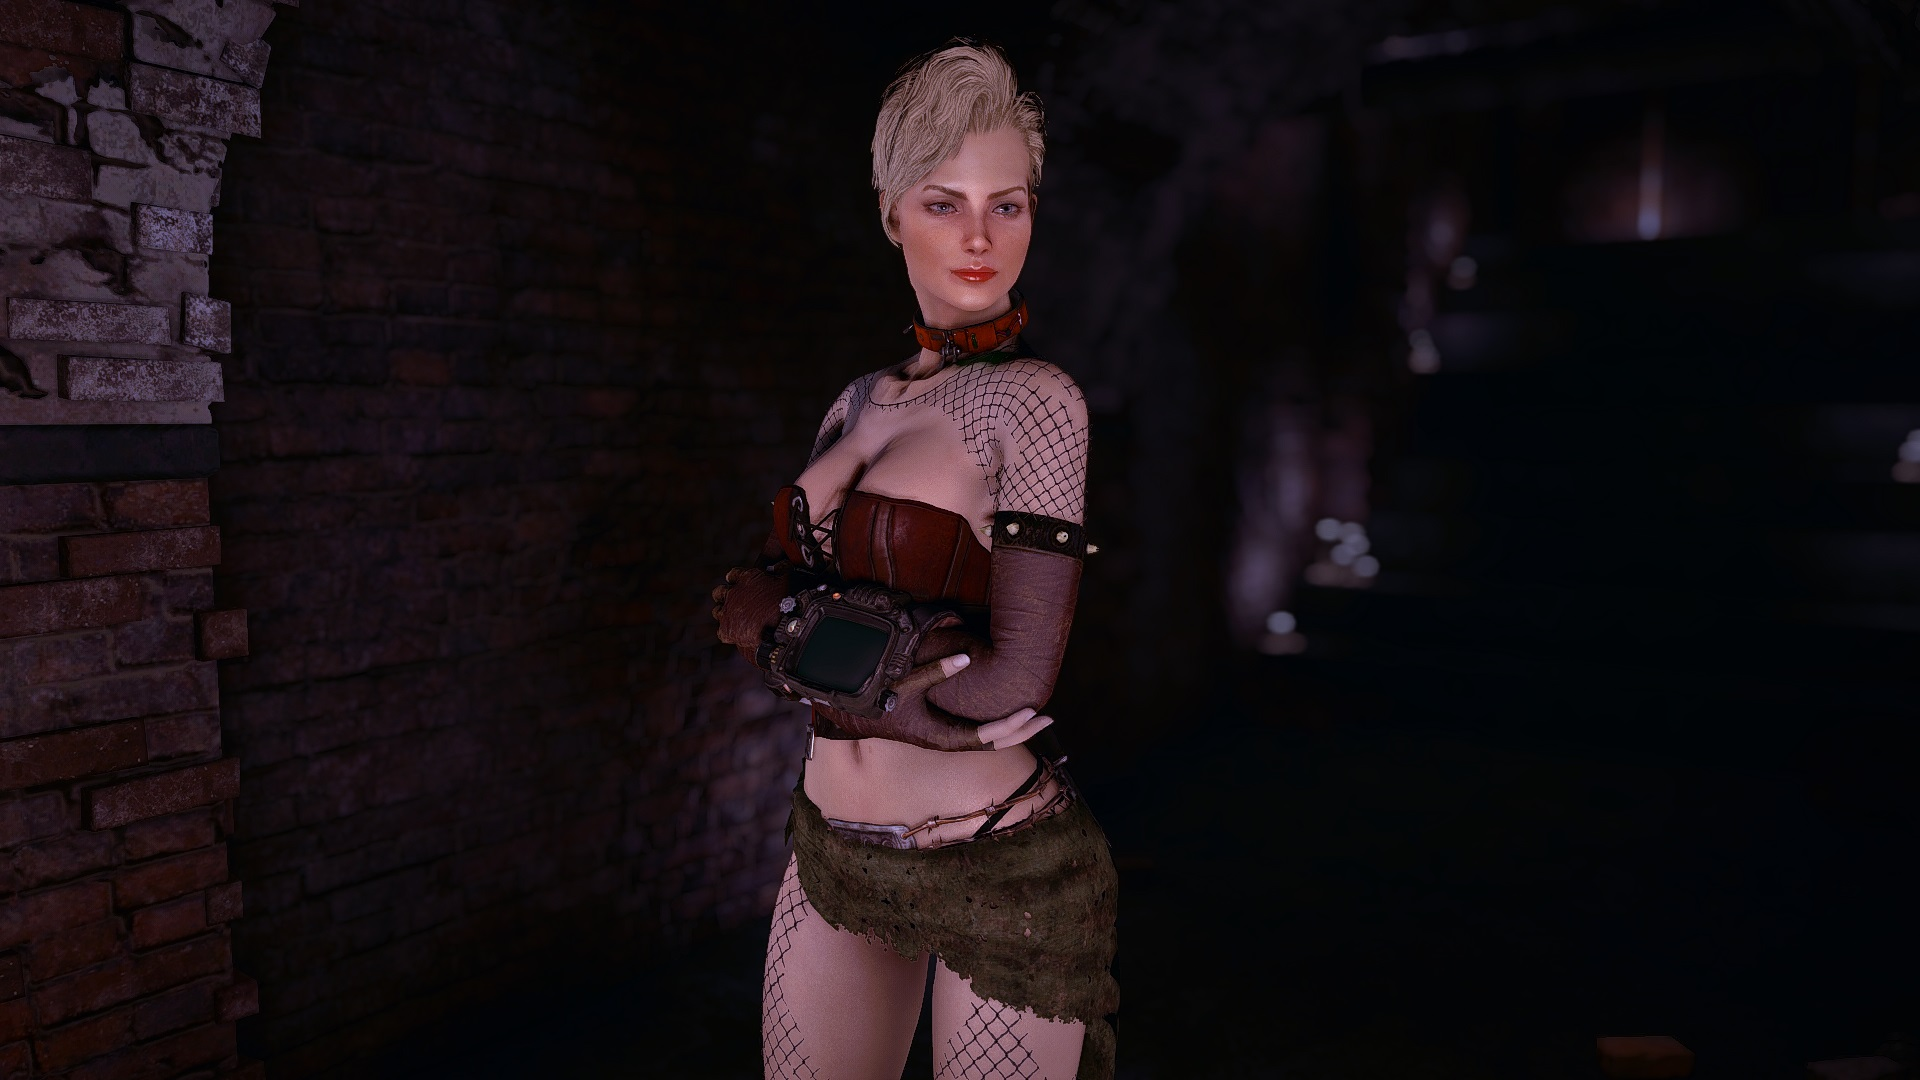 Margot in TheKites Combat Zone Stripper outfit at Fallout 4 Nexus 1920x1080